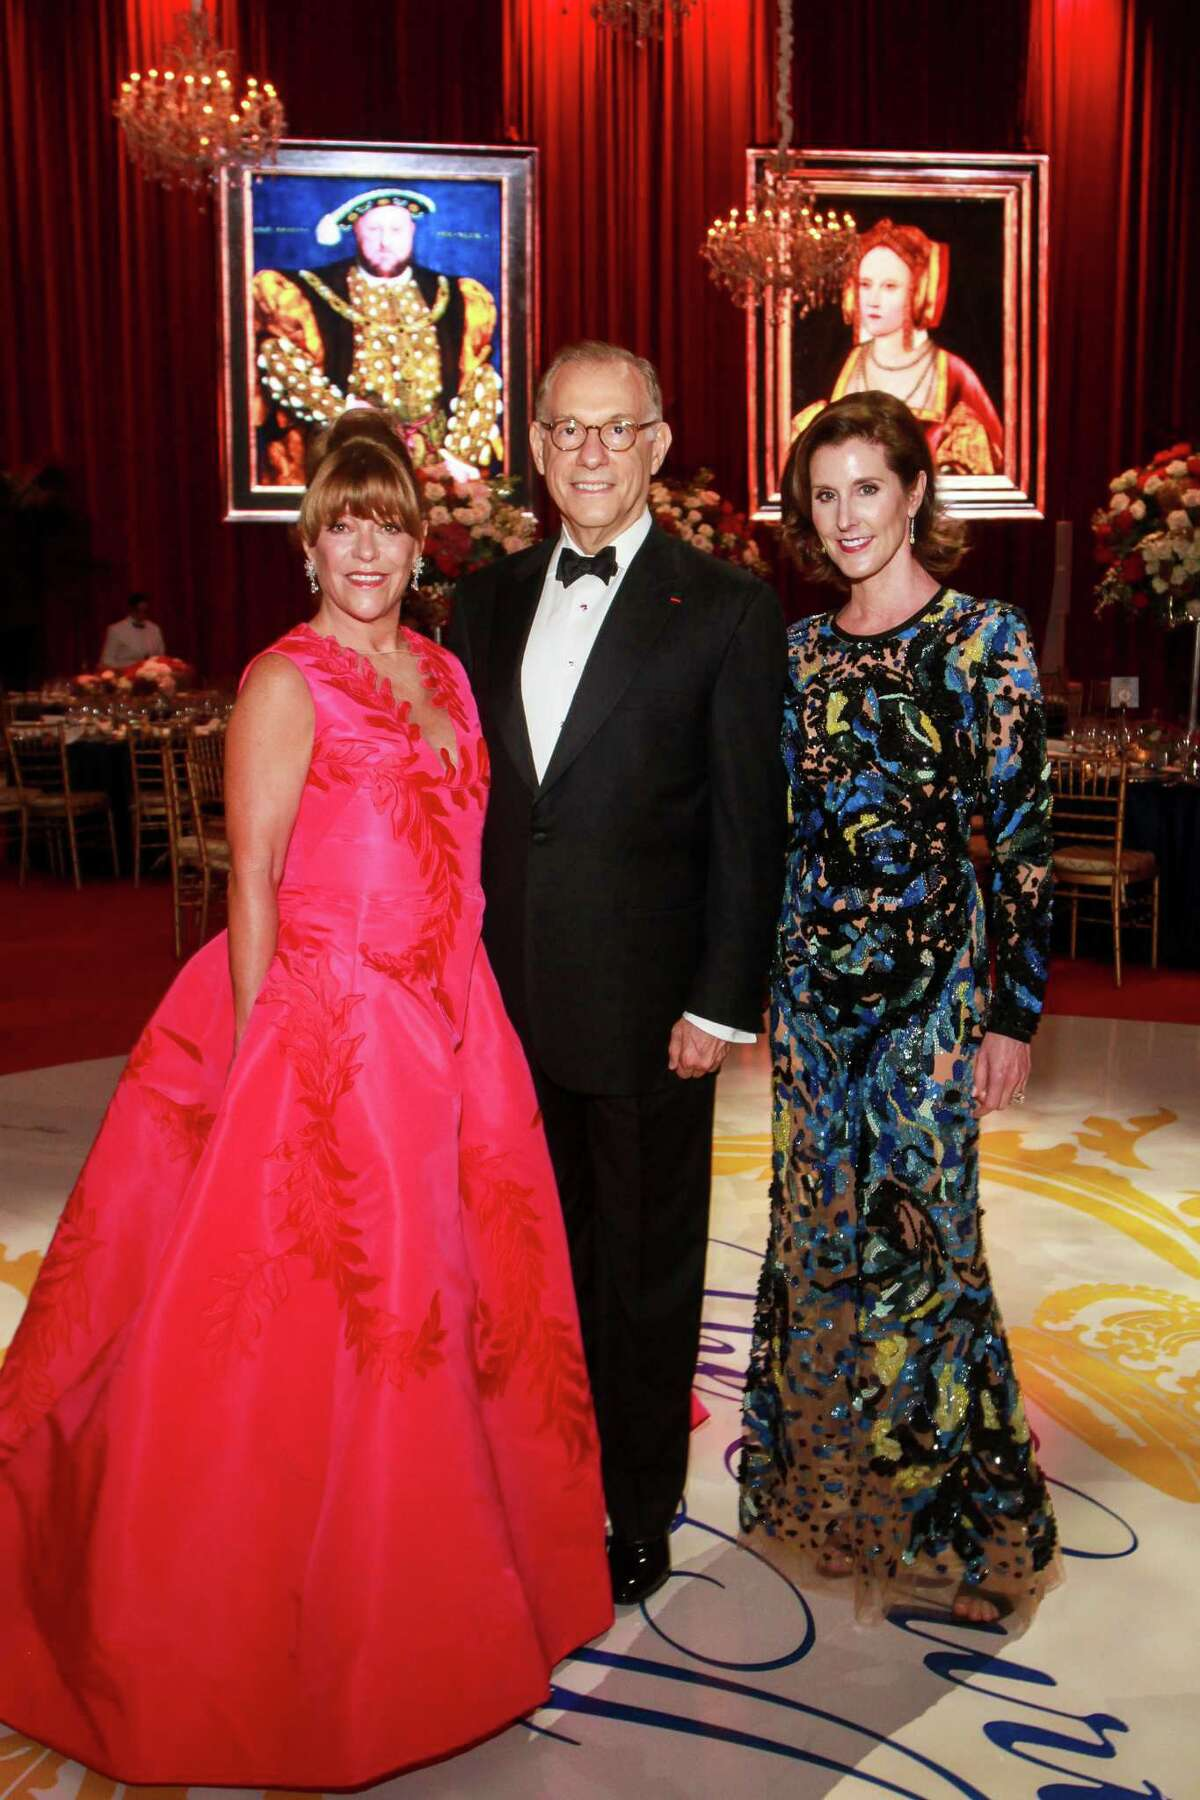 Chair Franci Neely, from left, Gary Tinterow and Phoebe Tudor at the Museum of Fine Arts Houston annual Grand Gala Ball.